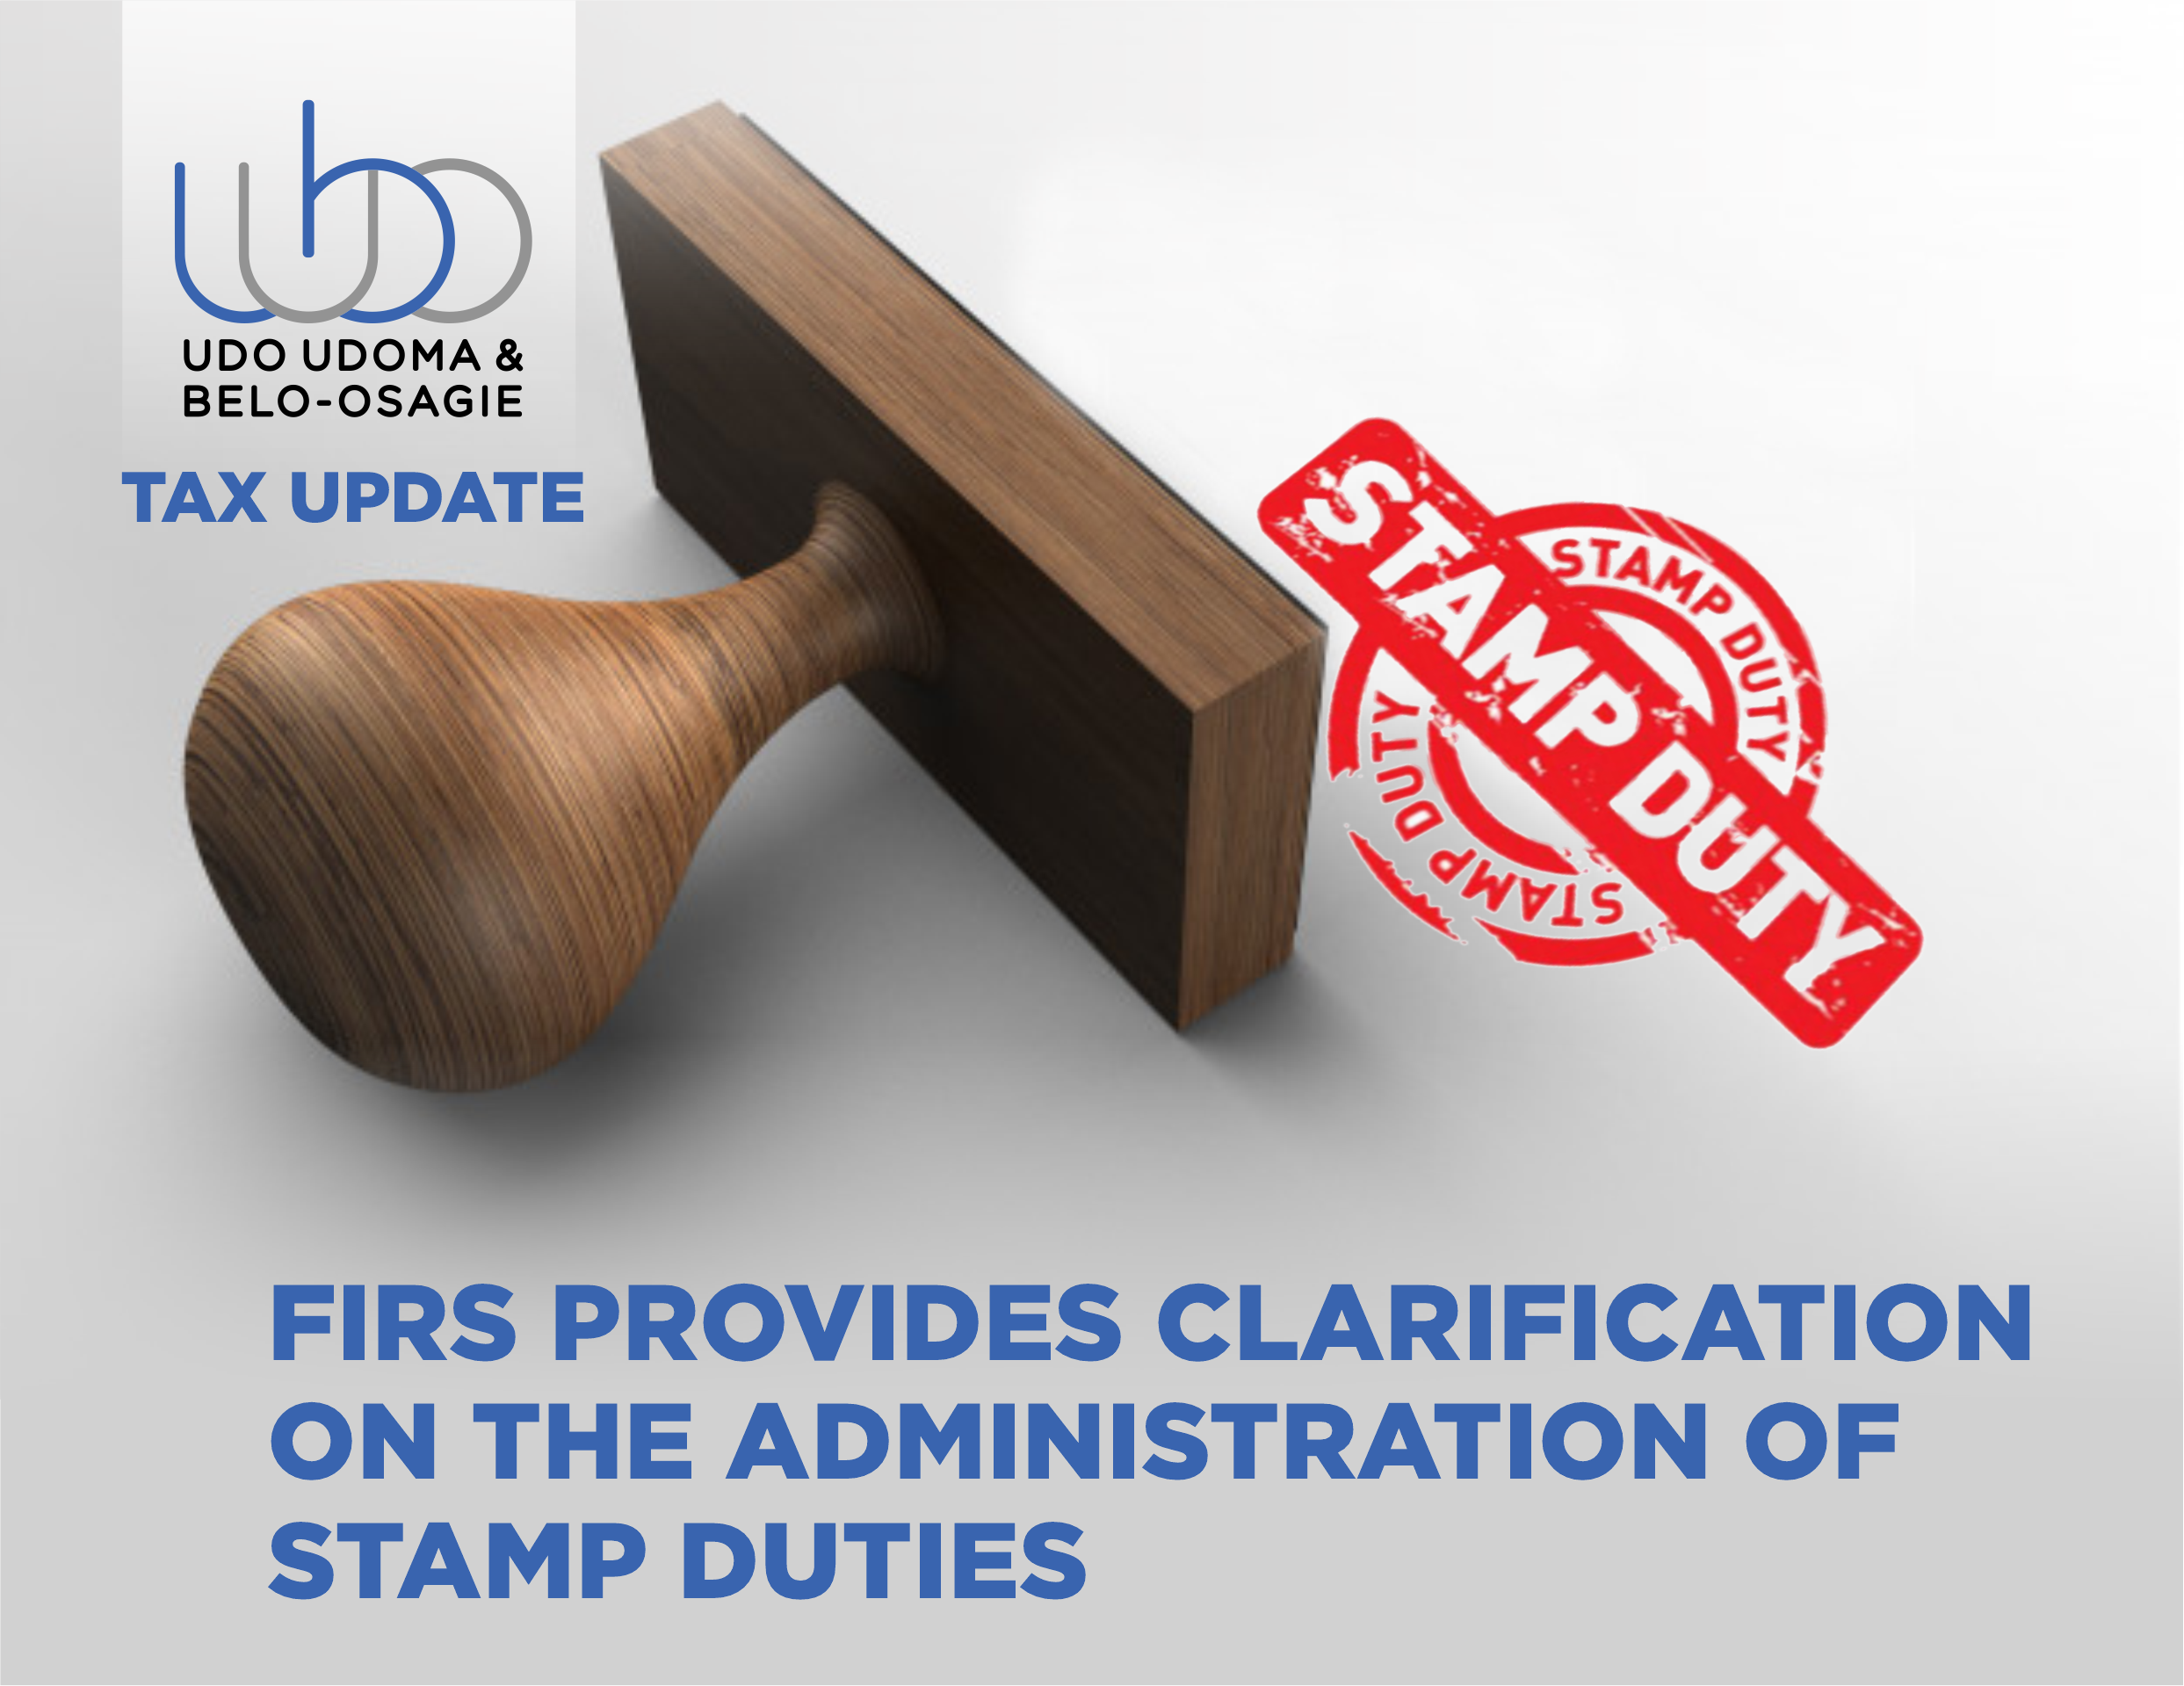 FIRS PROVIDES CLARIFICATION ON THE ADMINISTRATION OF STAMP DUTIES